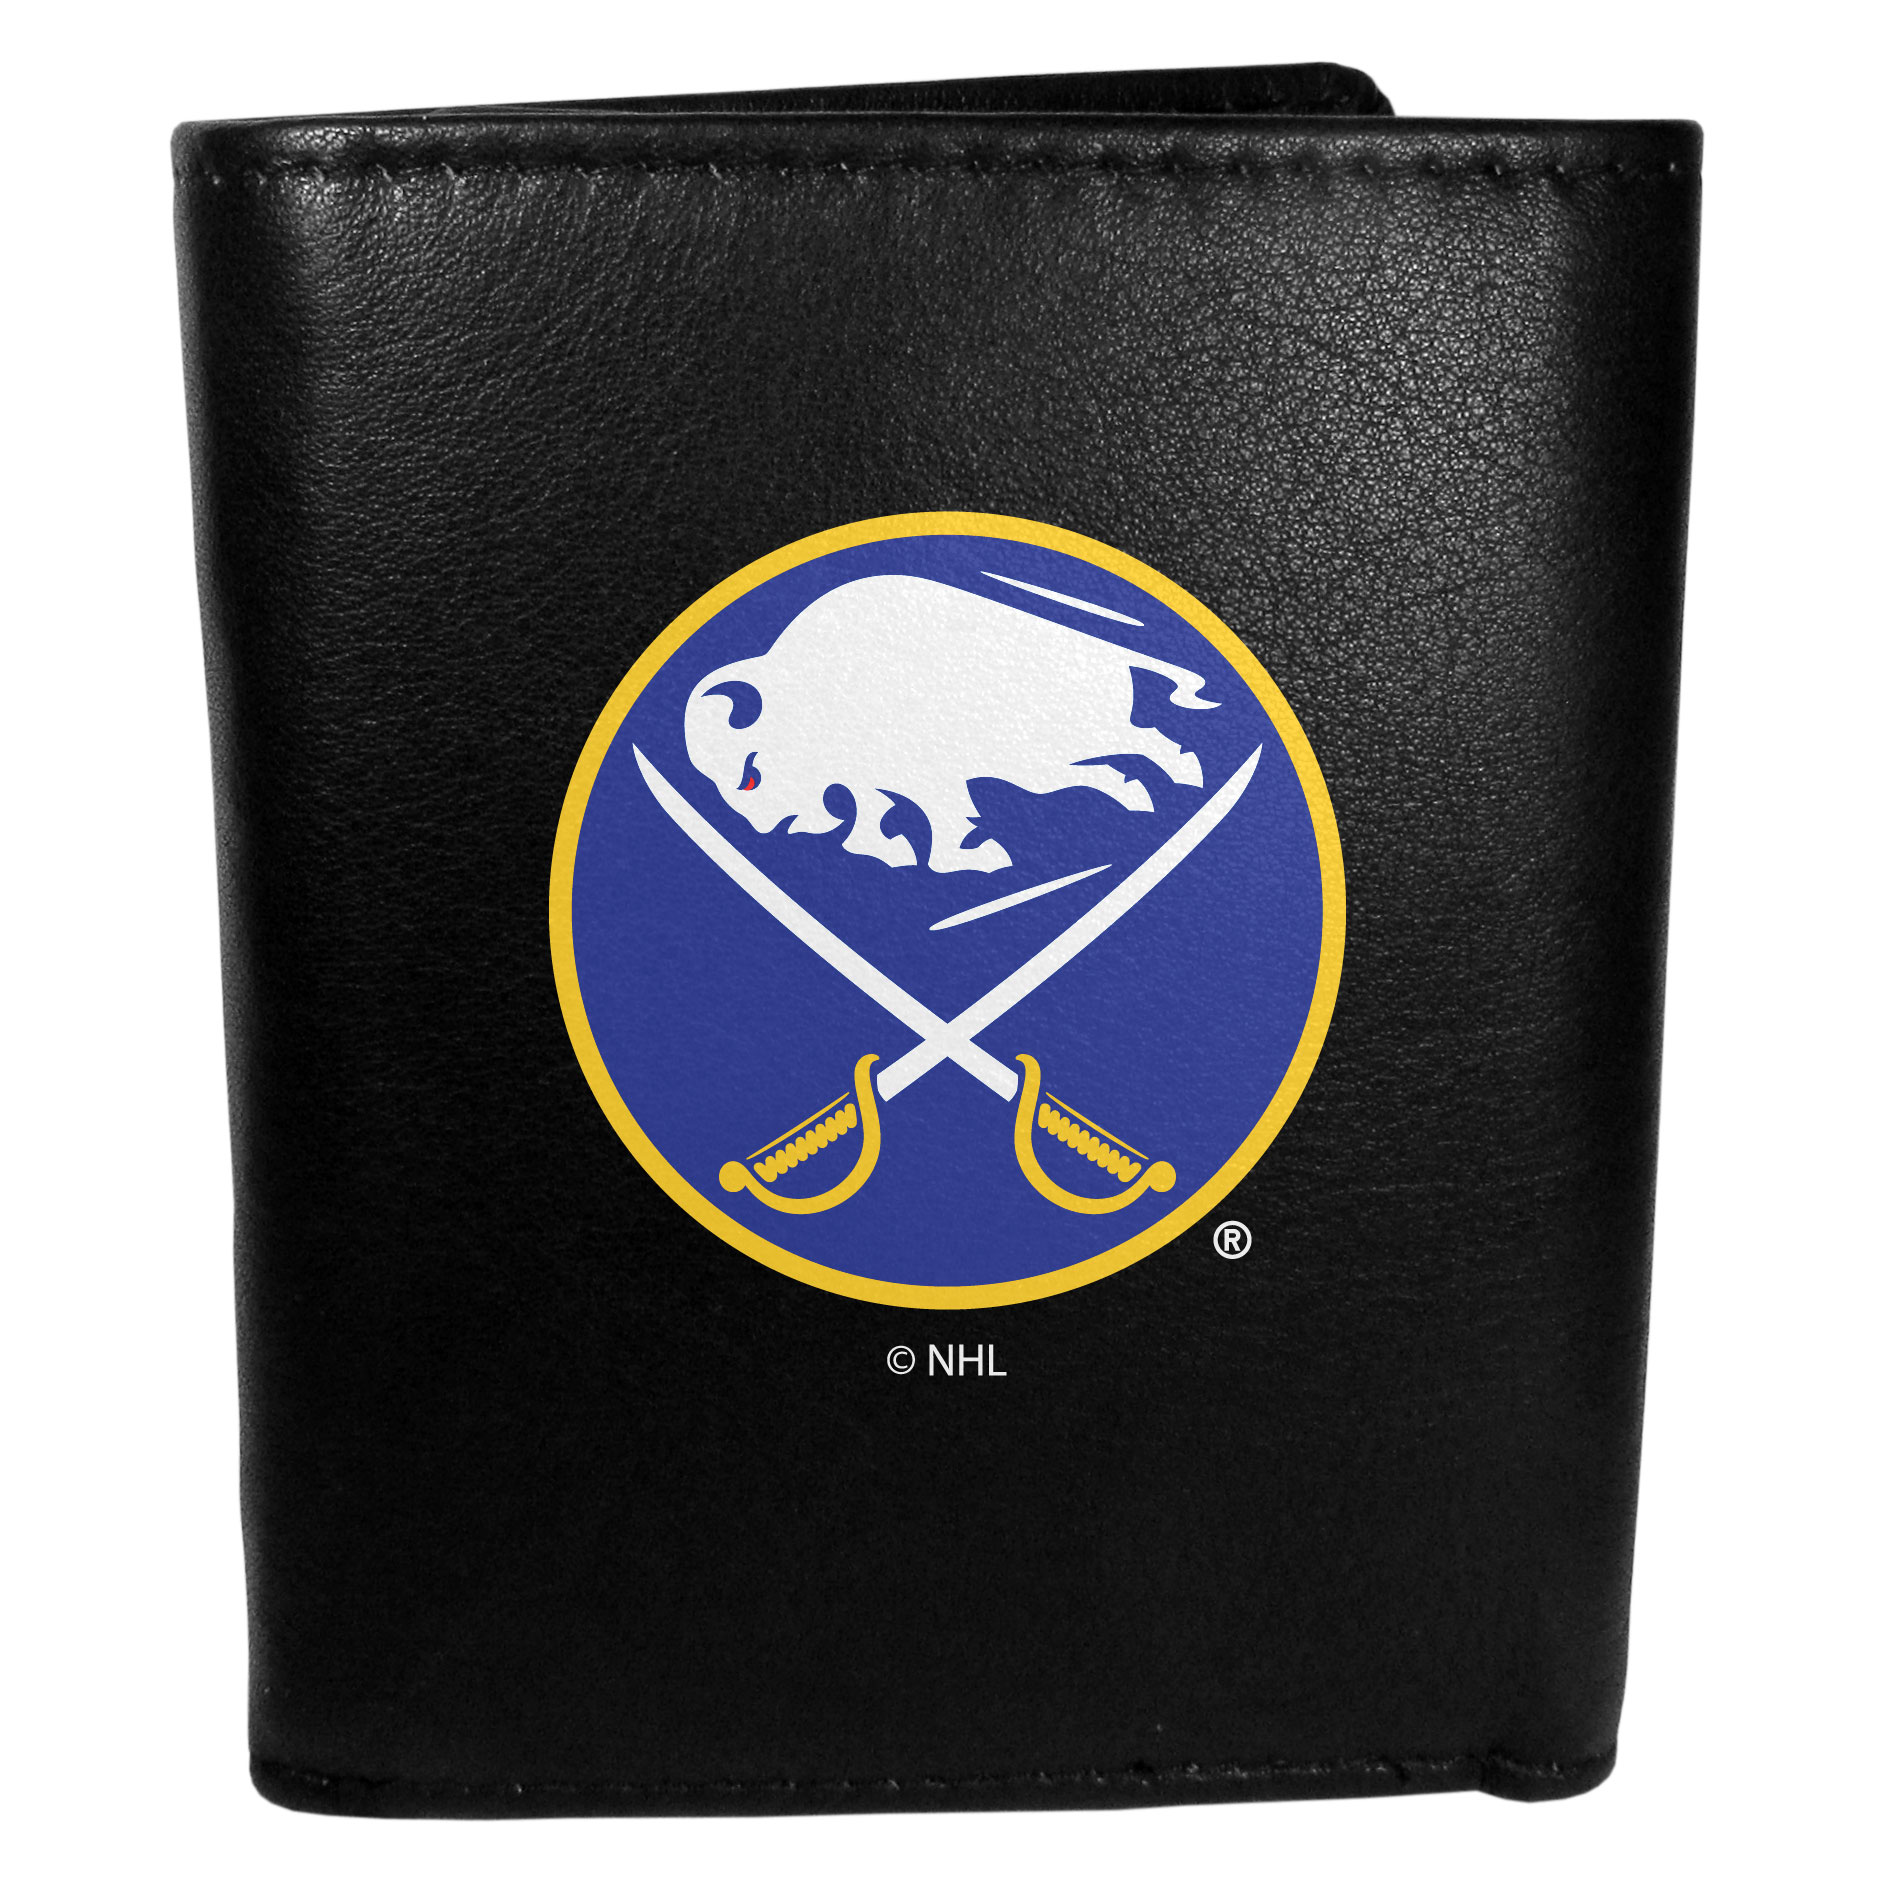 Buffalo Sabres® Leather Tri-fold Wallet, Large Logo - Our classic fine leather tri-fold wallet is meticulously crafted with genuine leather that will age beautifully so you will have a quality wallet for years to come. This is fan apparel at its finest. The wallet is packed with organizational  features; lots of credit card slots, large billfold pocket, and a window ID slot. The front of the wallet features an extra large Buffalo Sabres® printed logo.